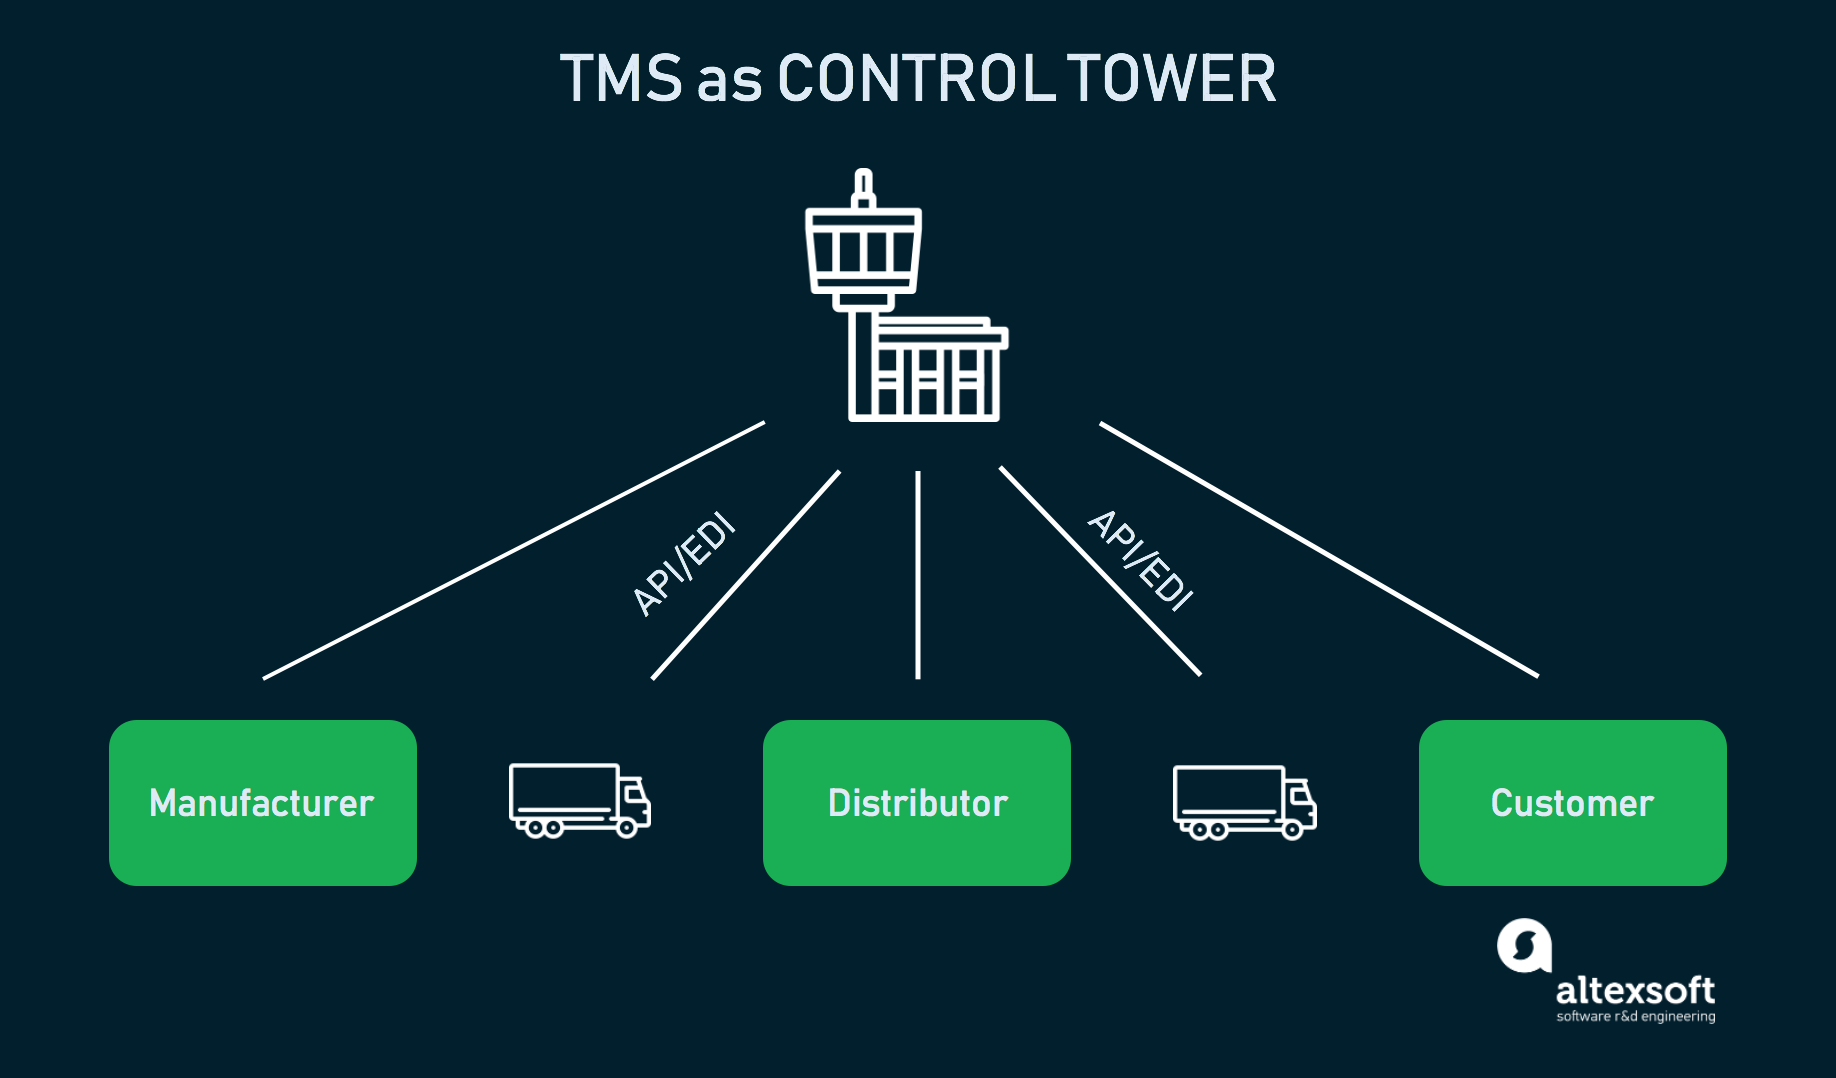 tms as control tower